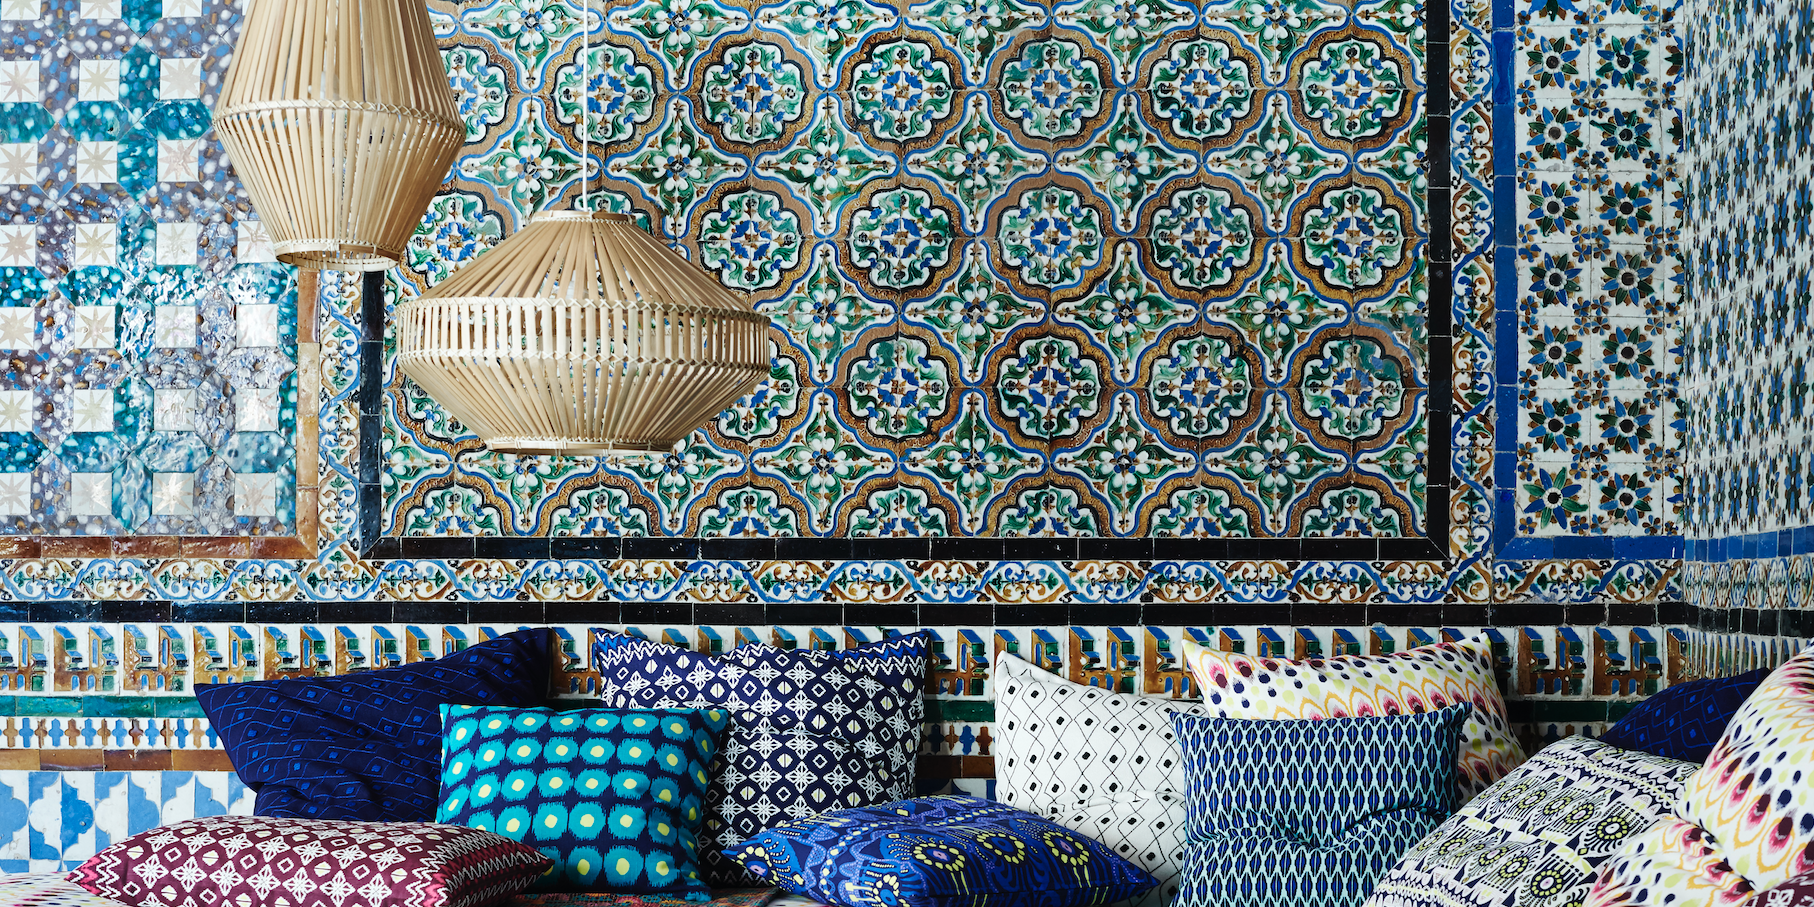 Ikea's latest collection will bring a relaxed bohemian vibe to your interior